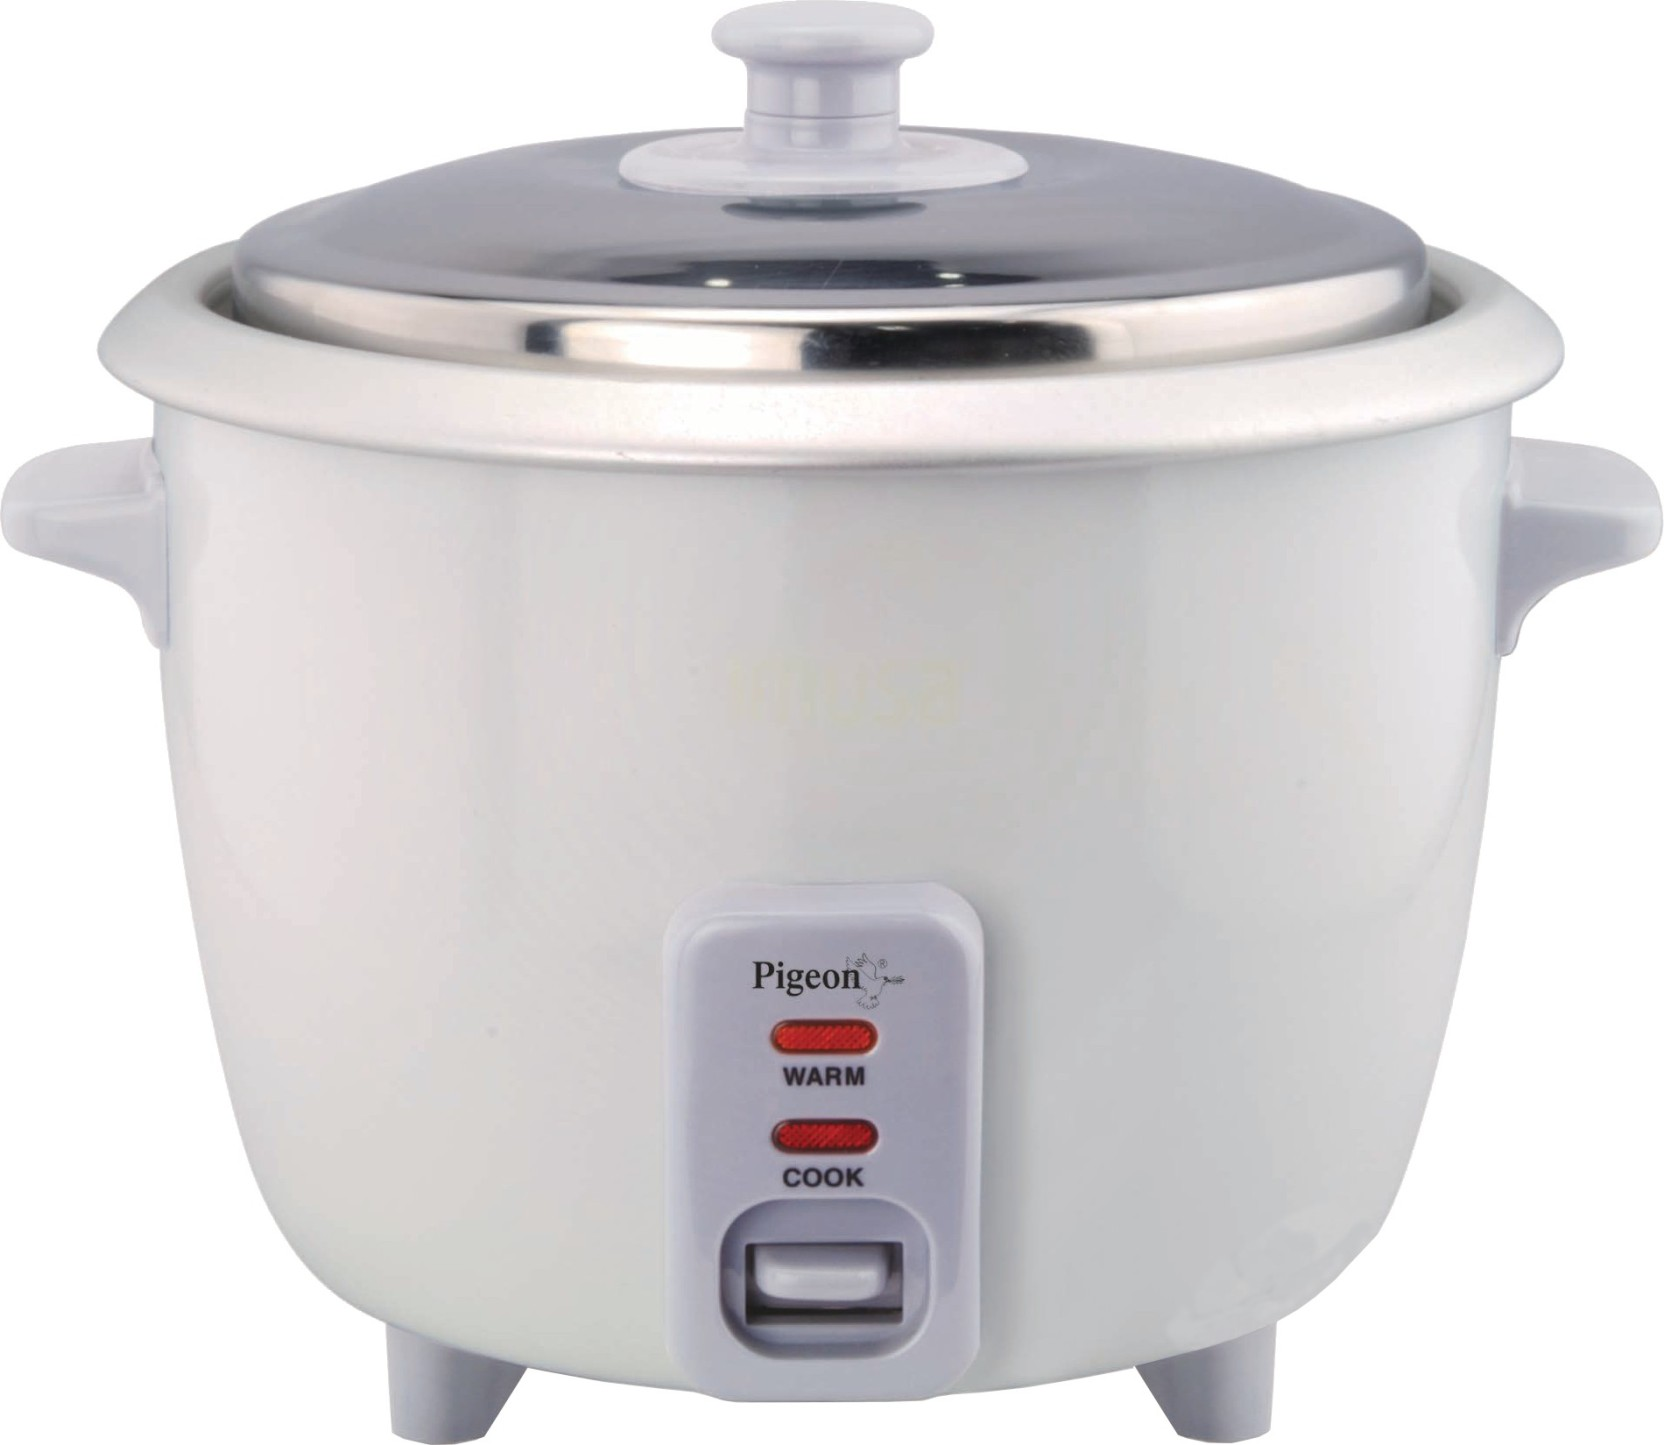 Pigeon Favourite Electric Rice Cooker With Steaming